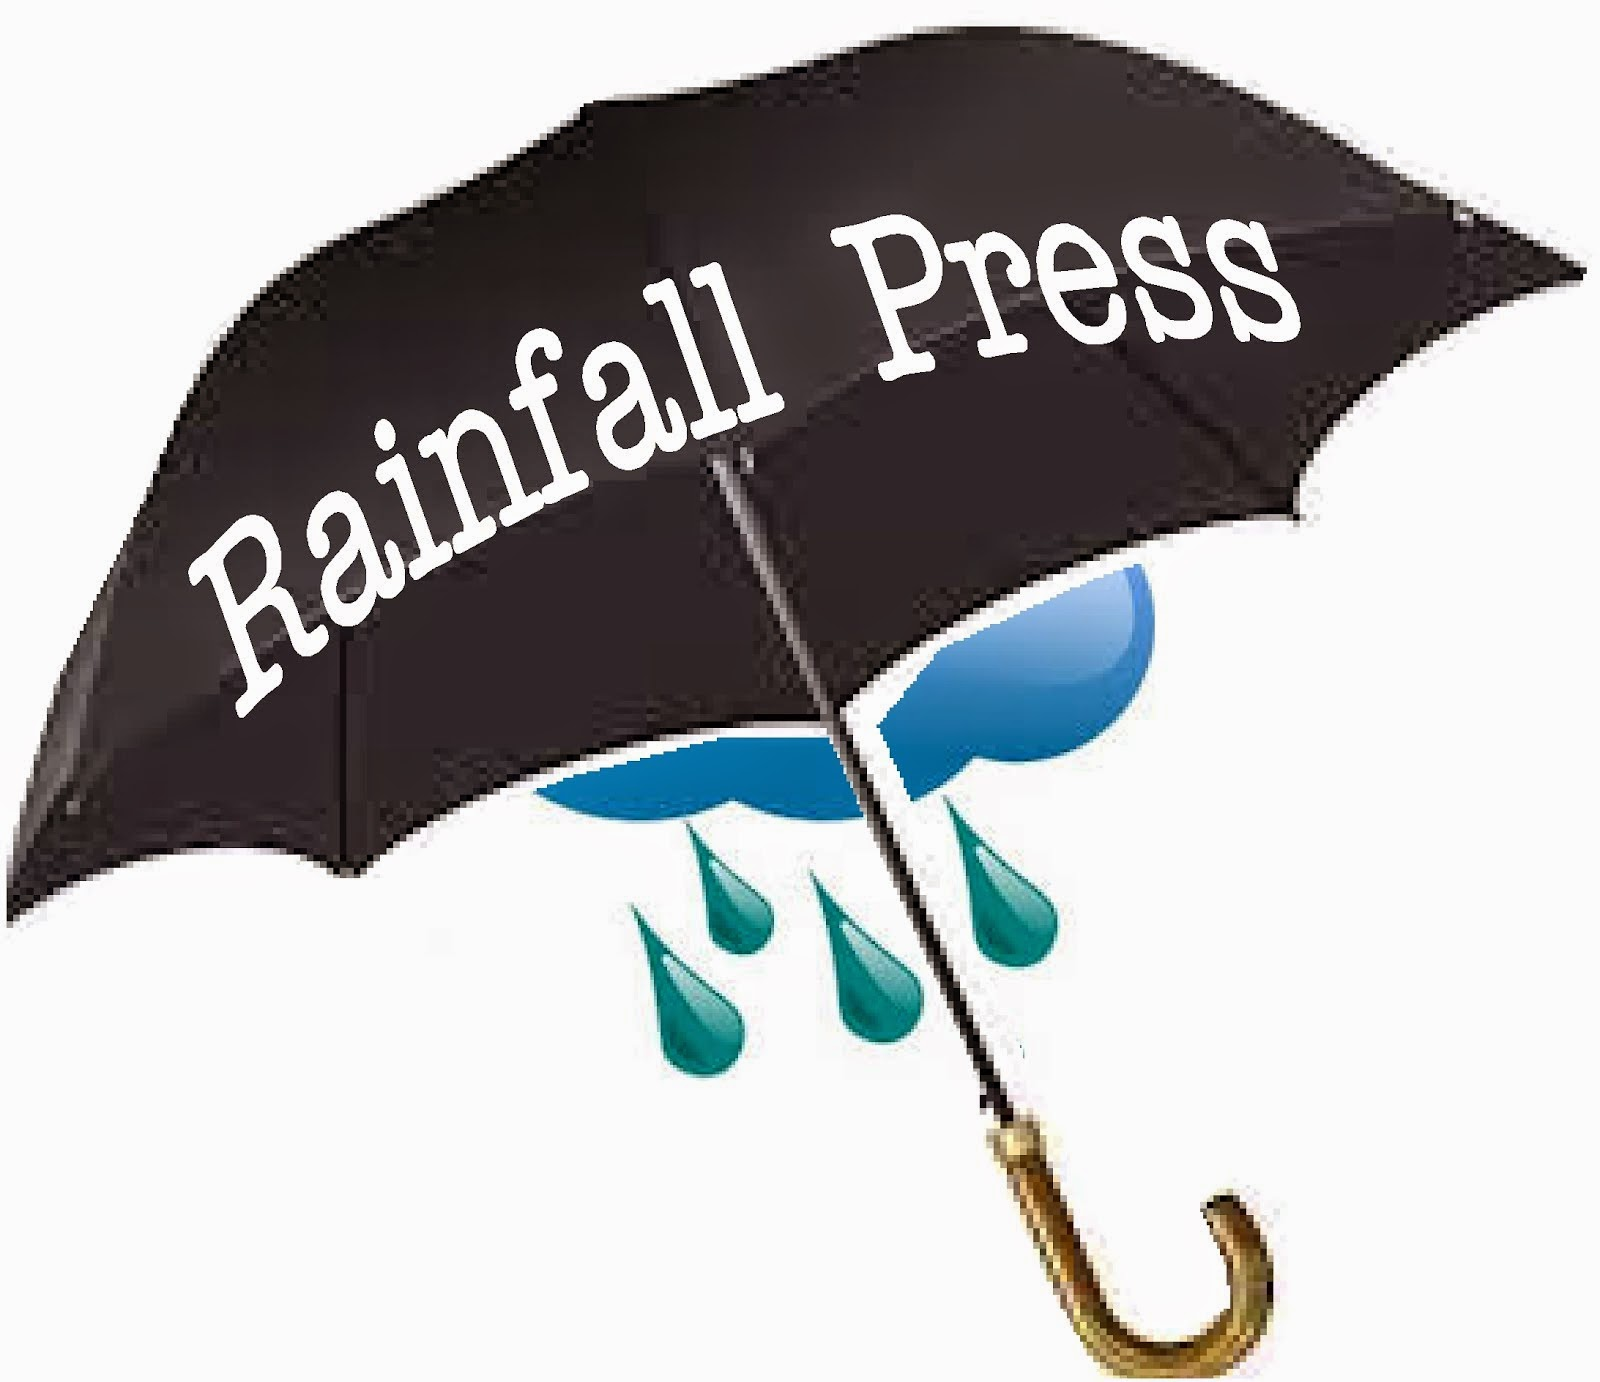 Rainfall Press